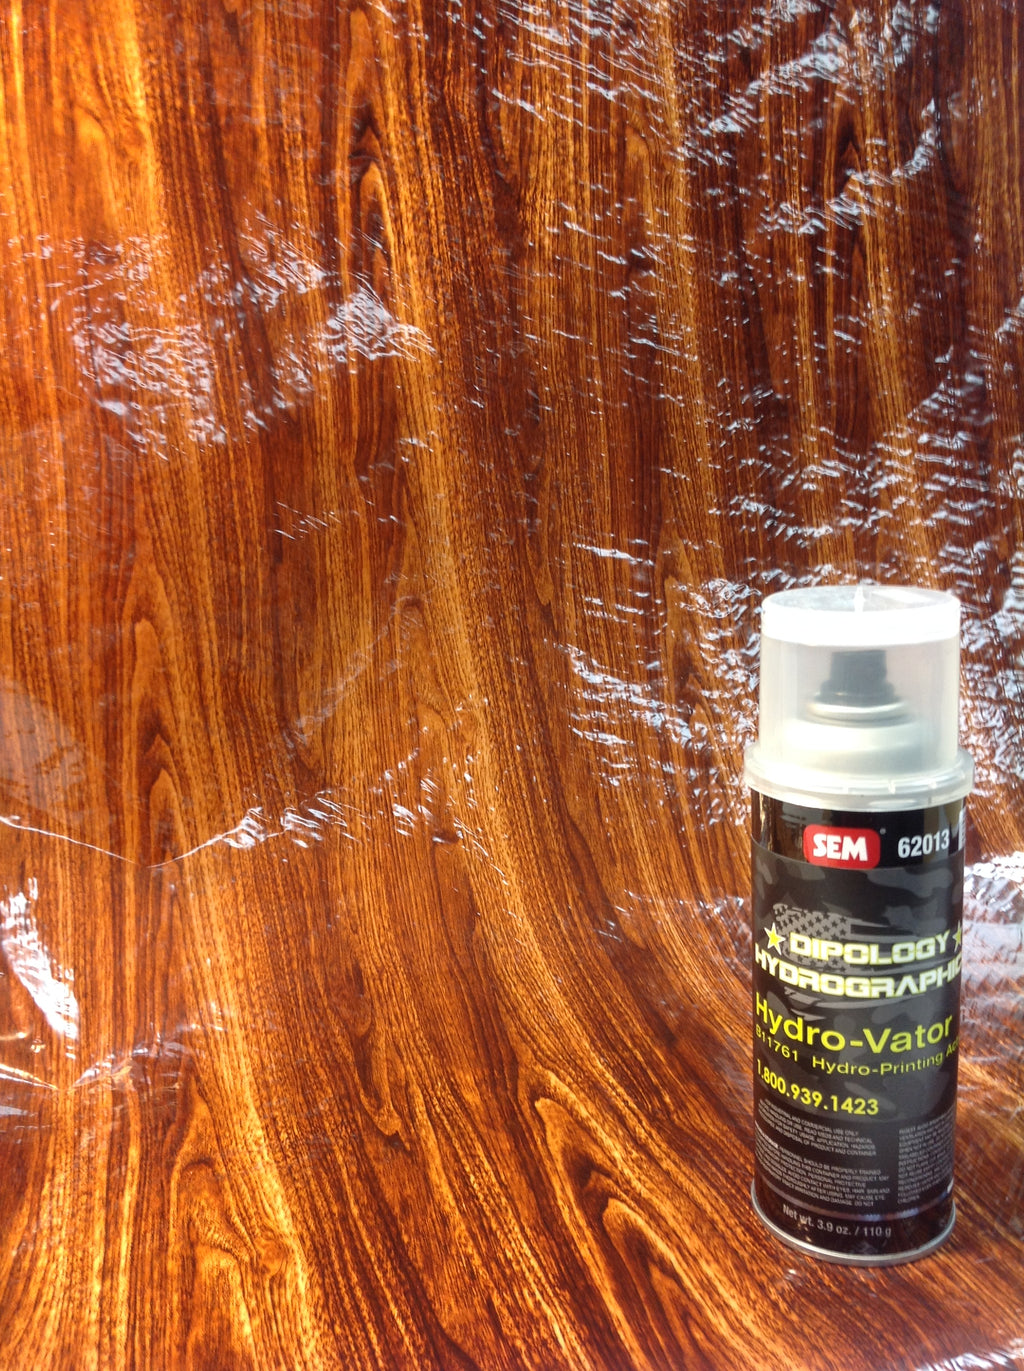 CLASSIC WOODGRAIN 3 Meter Pro Kit with Aerosol Activator, Hydrographics film - Dipology Hydrographics